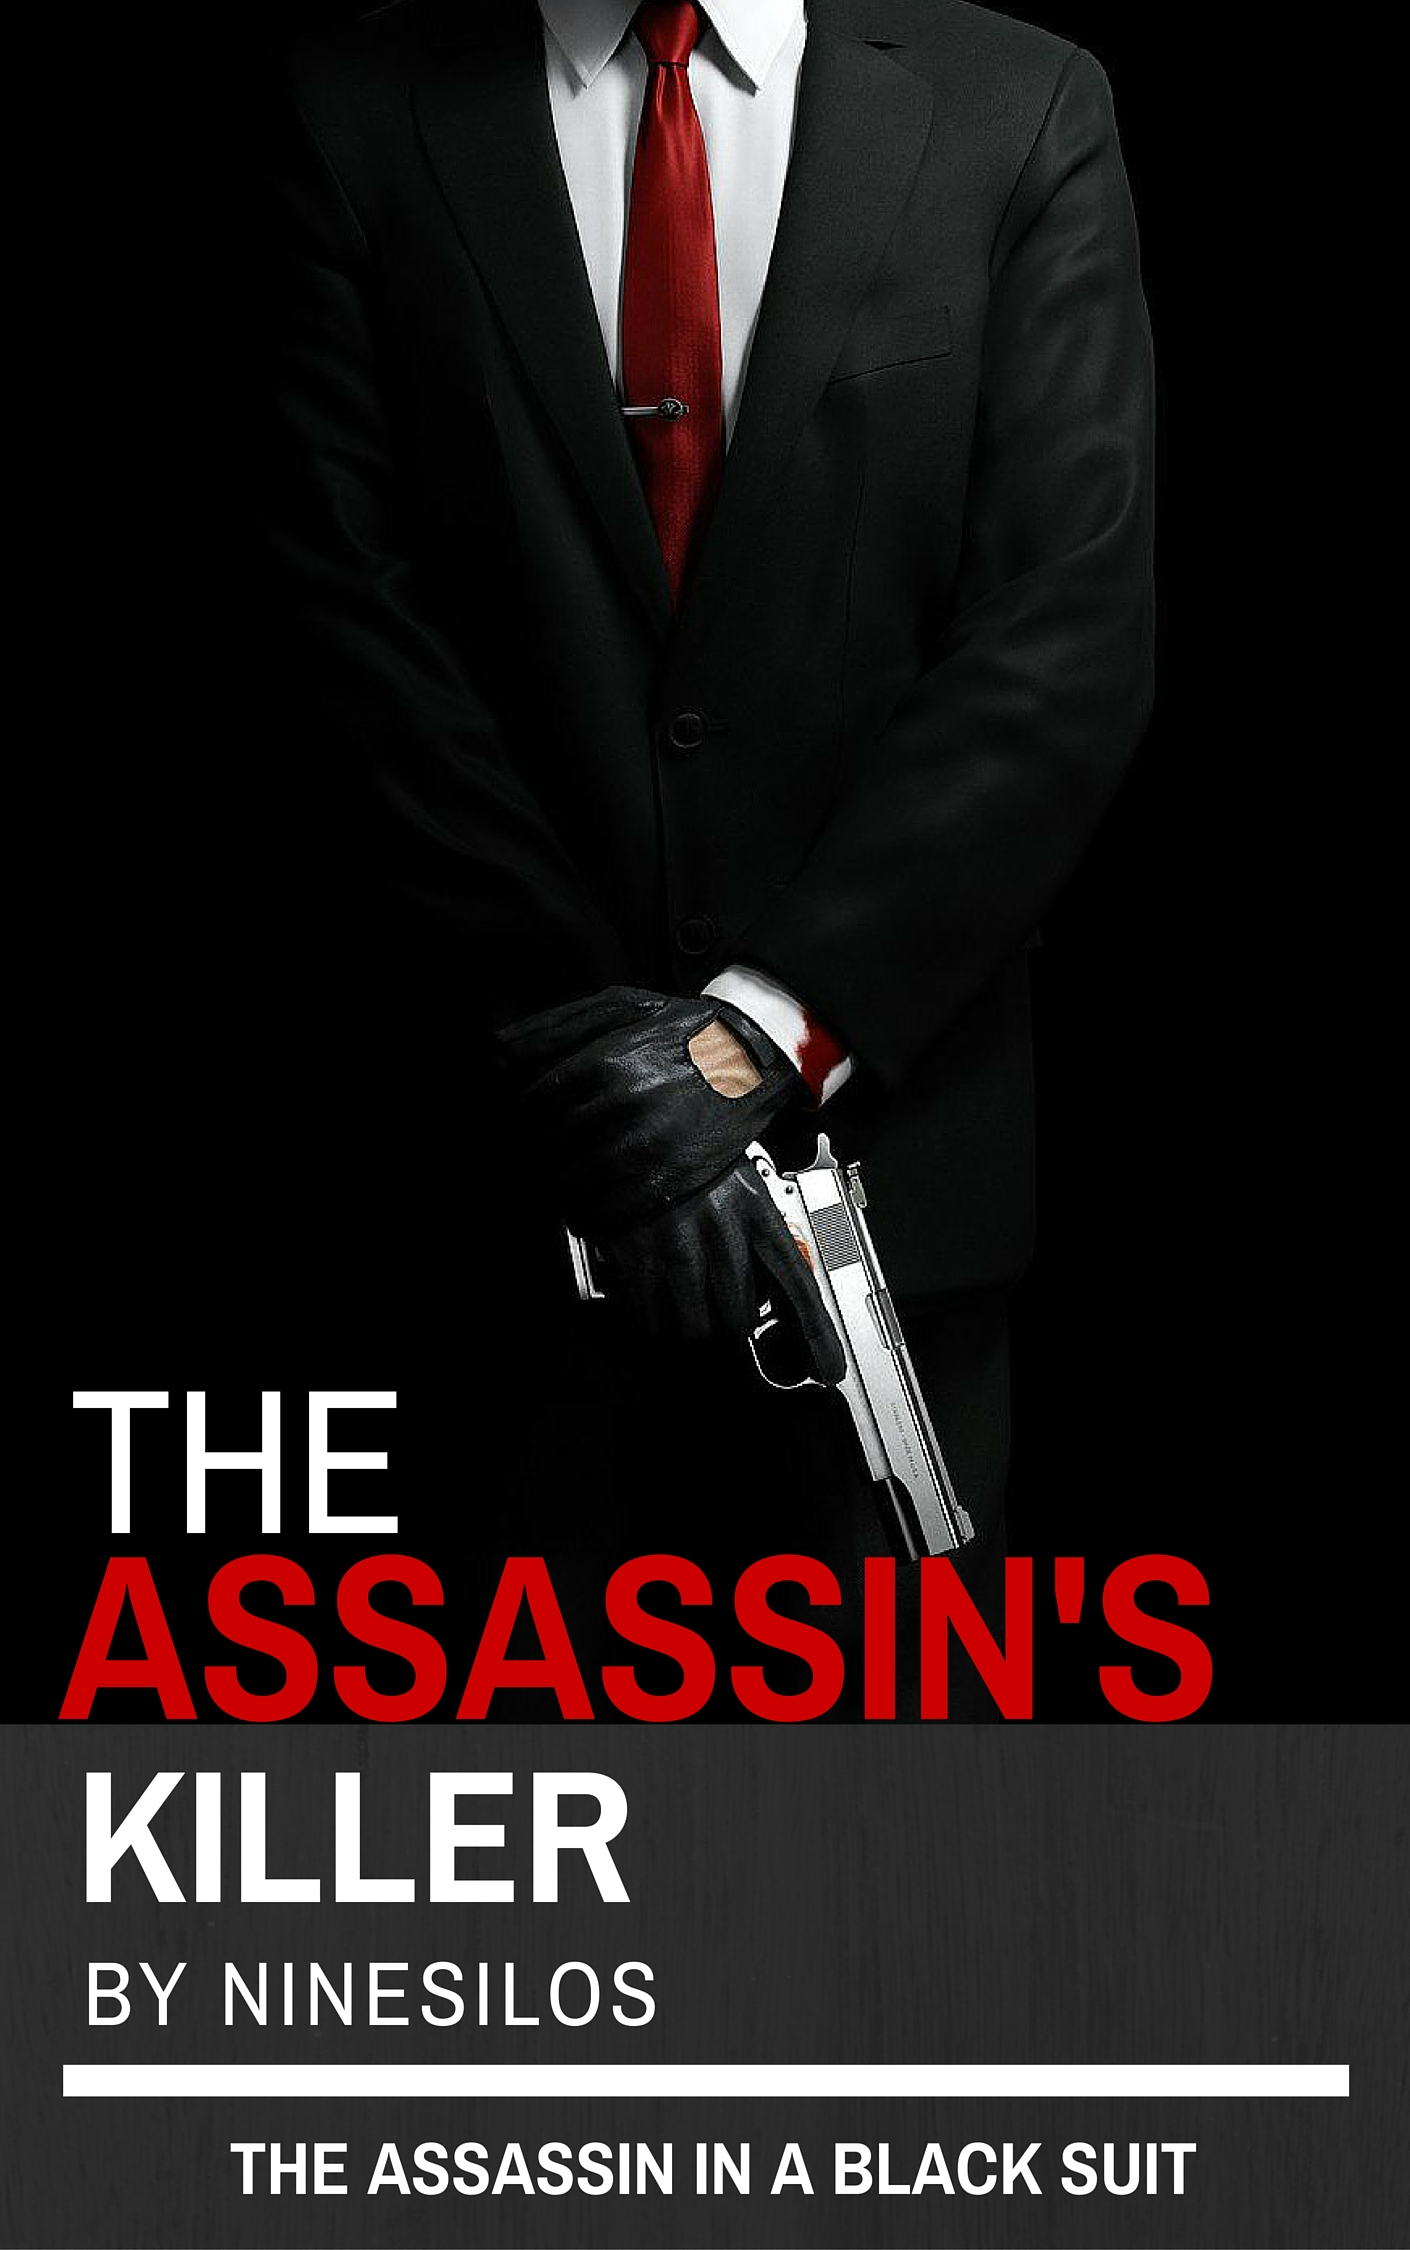 The Assassin's Killer